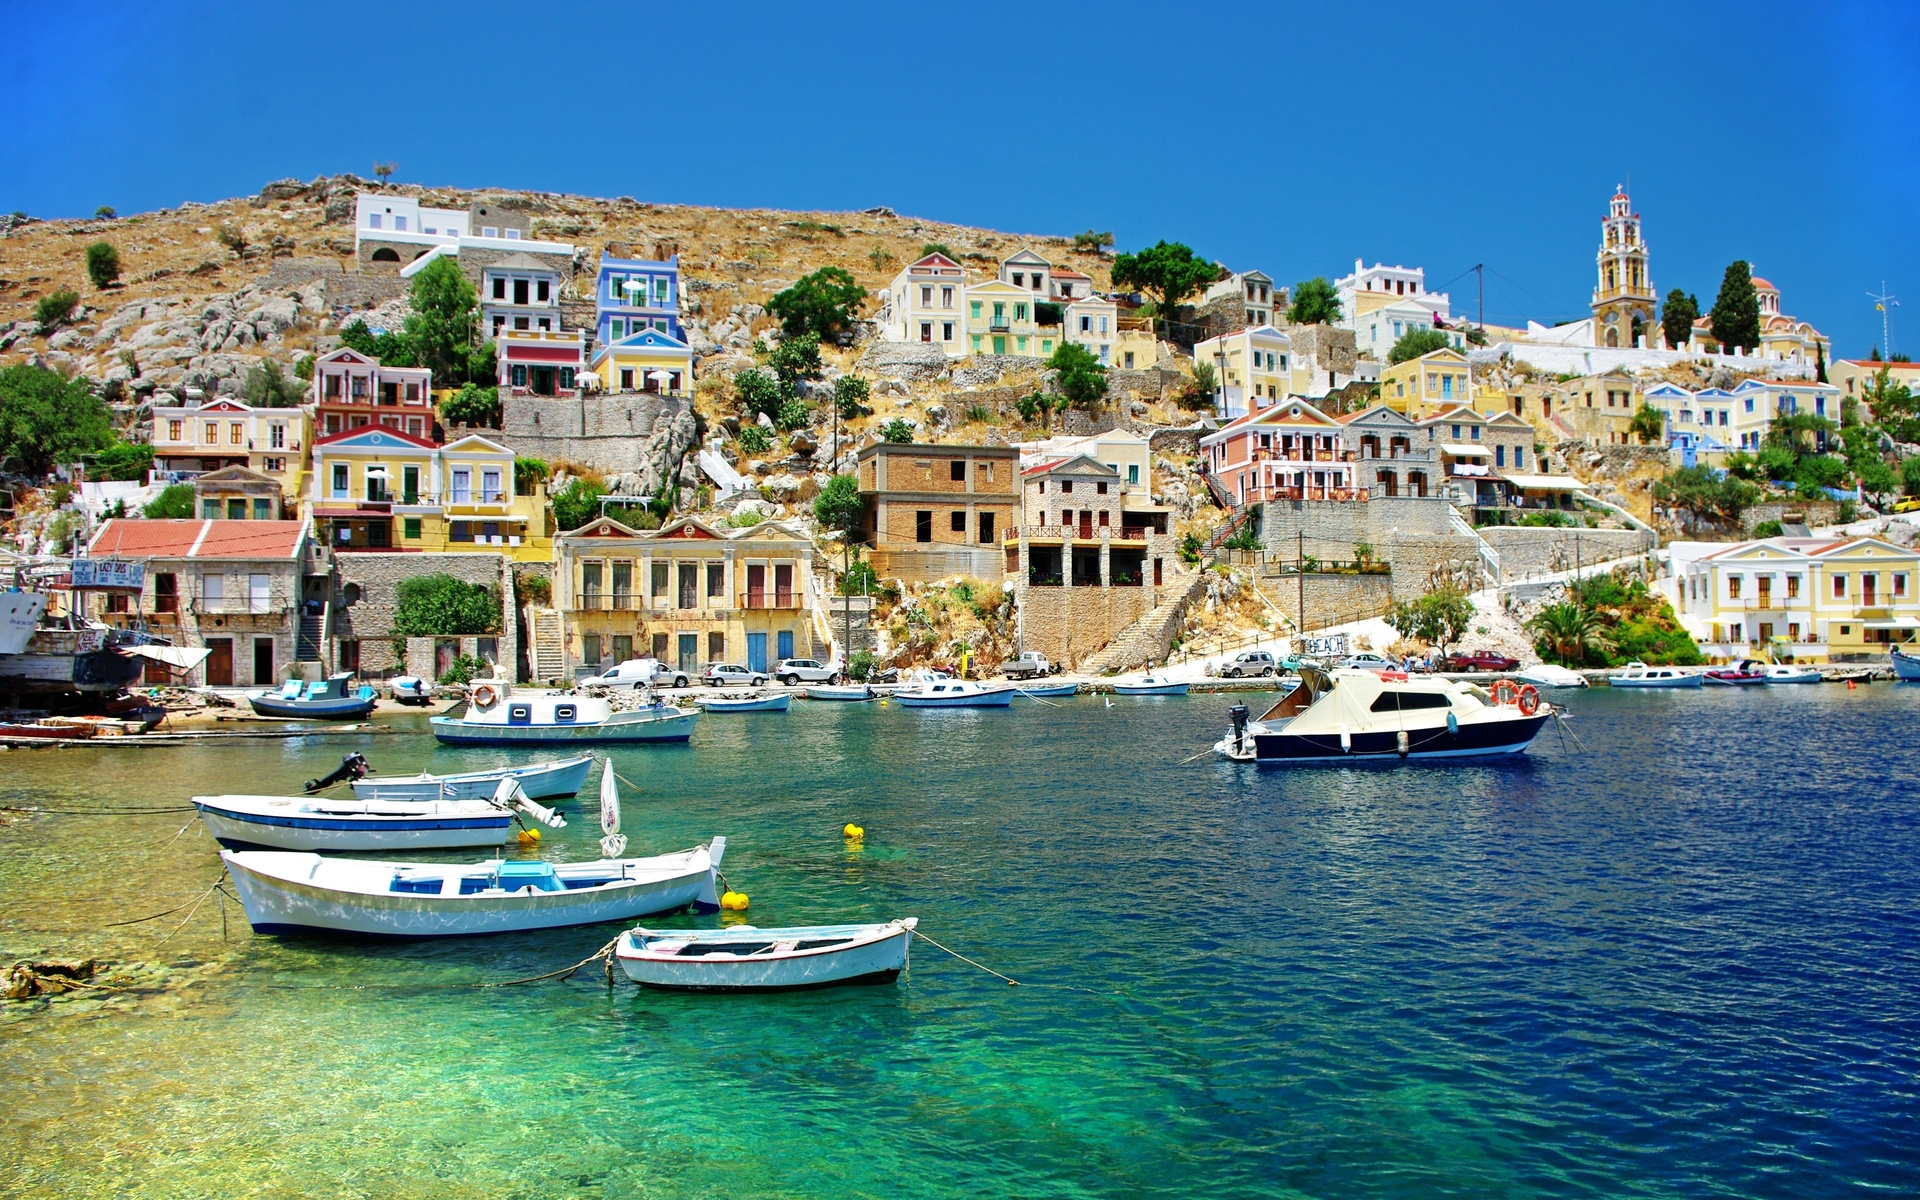 The Greek Islands Of Symi Amp Rhodes Full Hd Wallpaper And Background Image 1920x1200 Id 279609